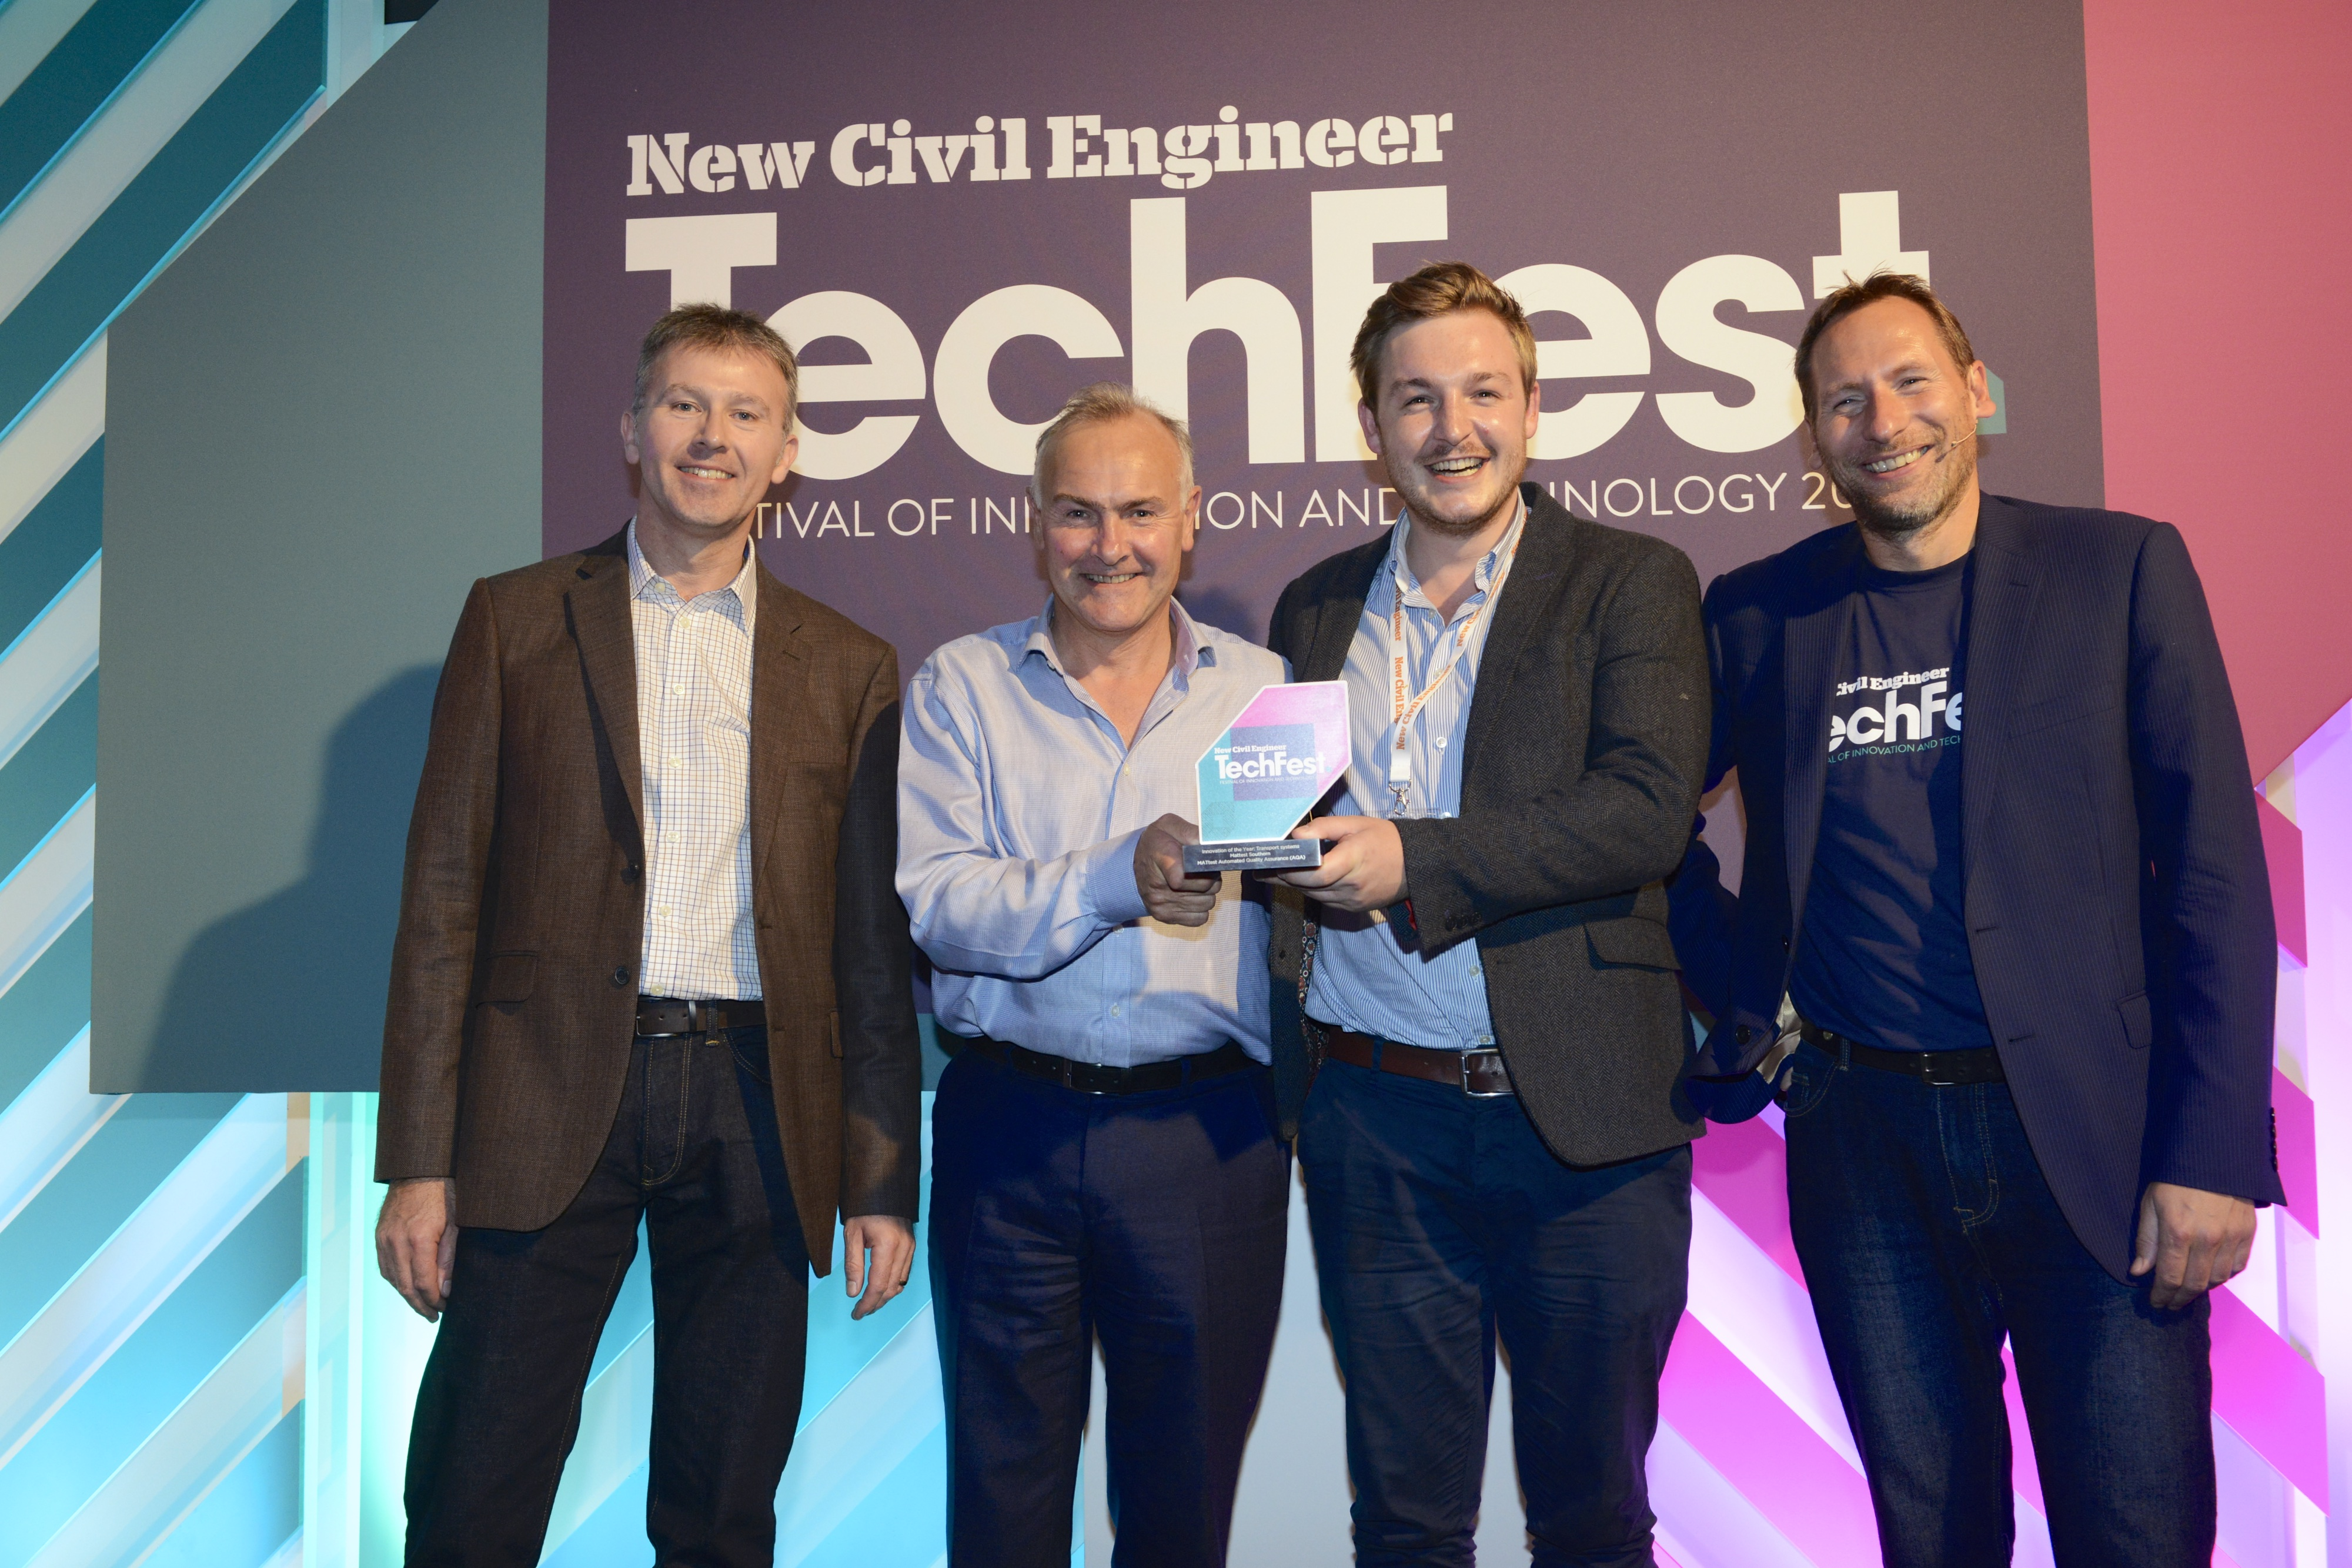 Innovation Award for MATtest Southern Ltd